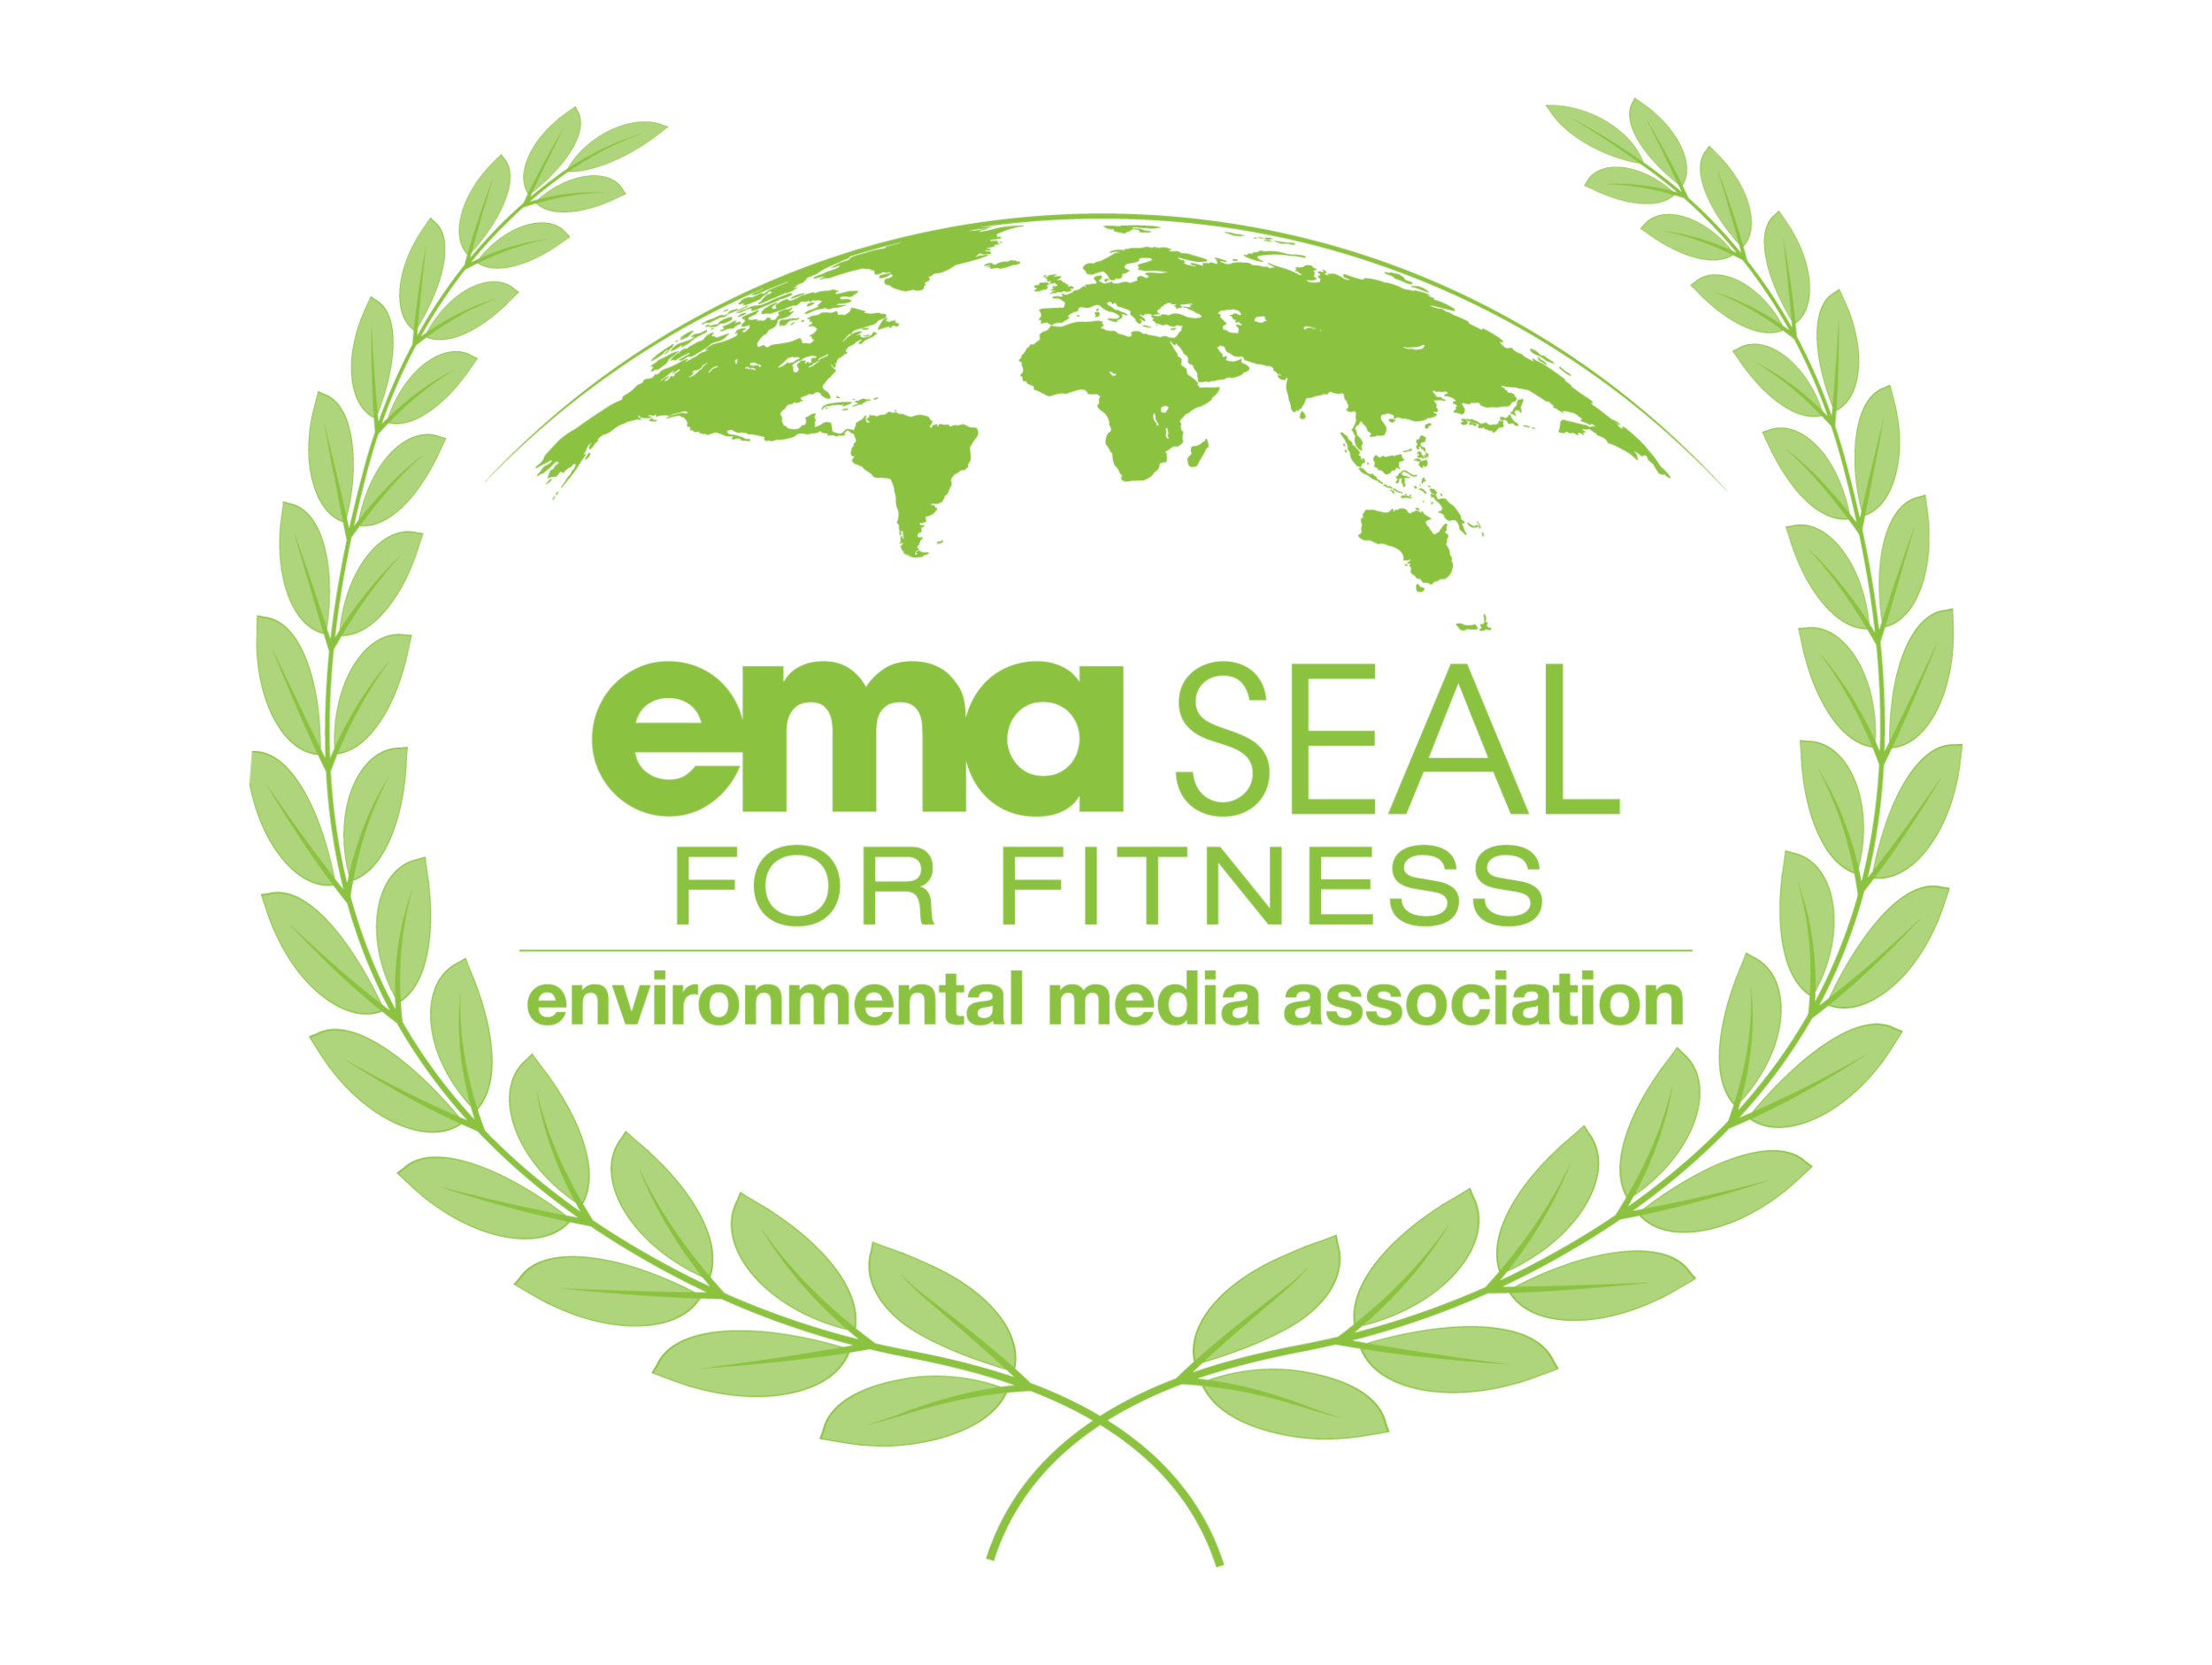 ema_seal_for_fitness-grn.png